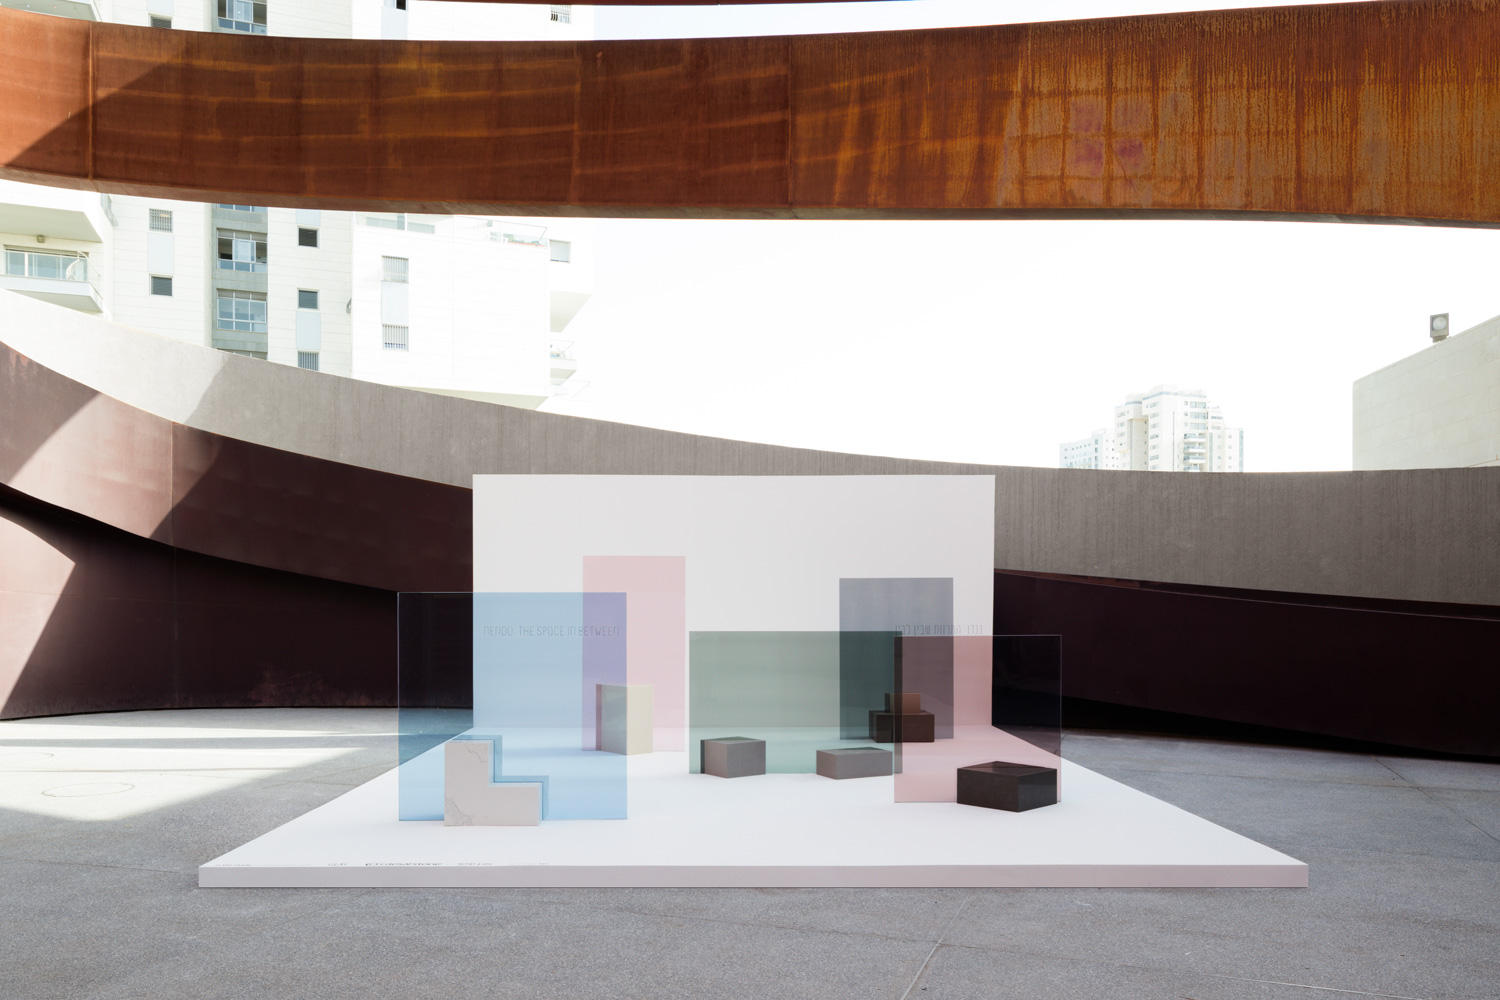 Nendo-The-Space-in-Between-Ground-Floor-Yellowtrace-05.jpg